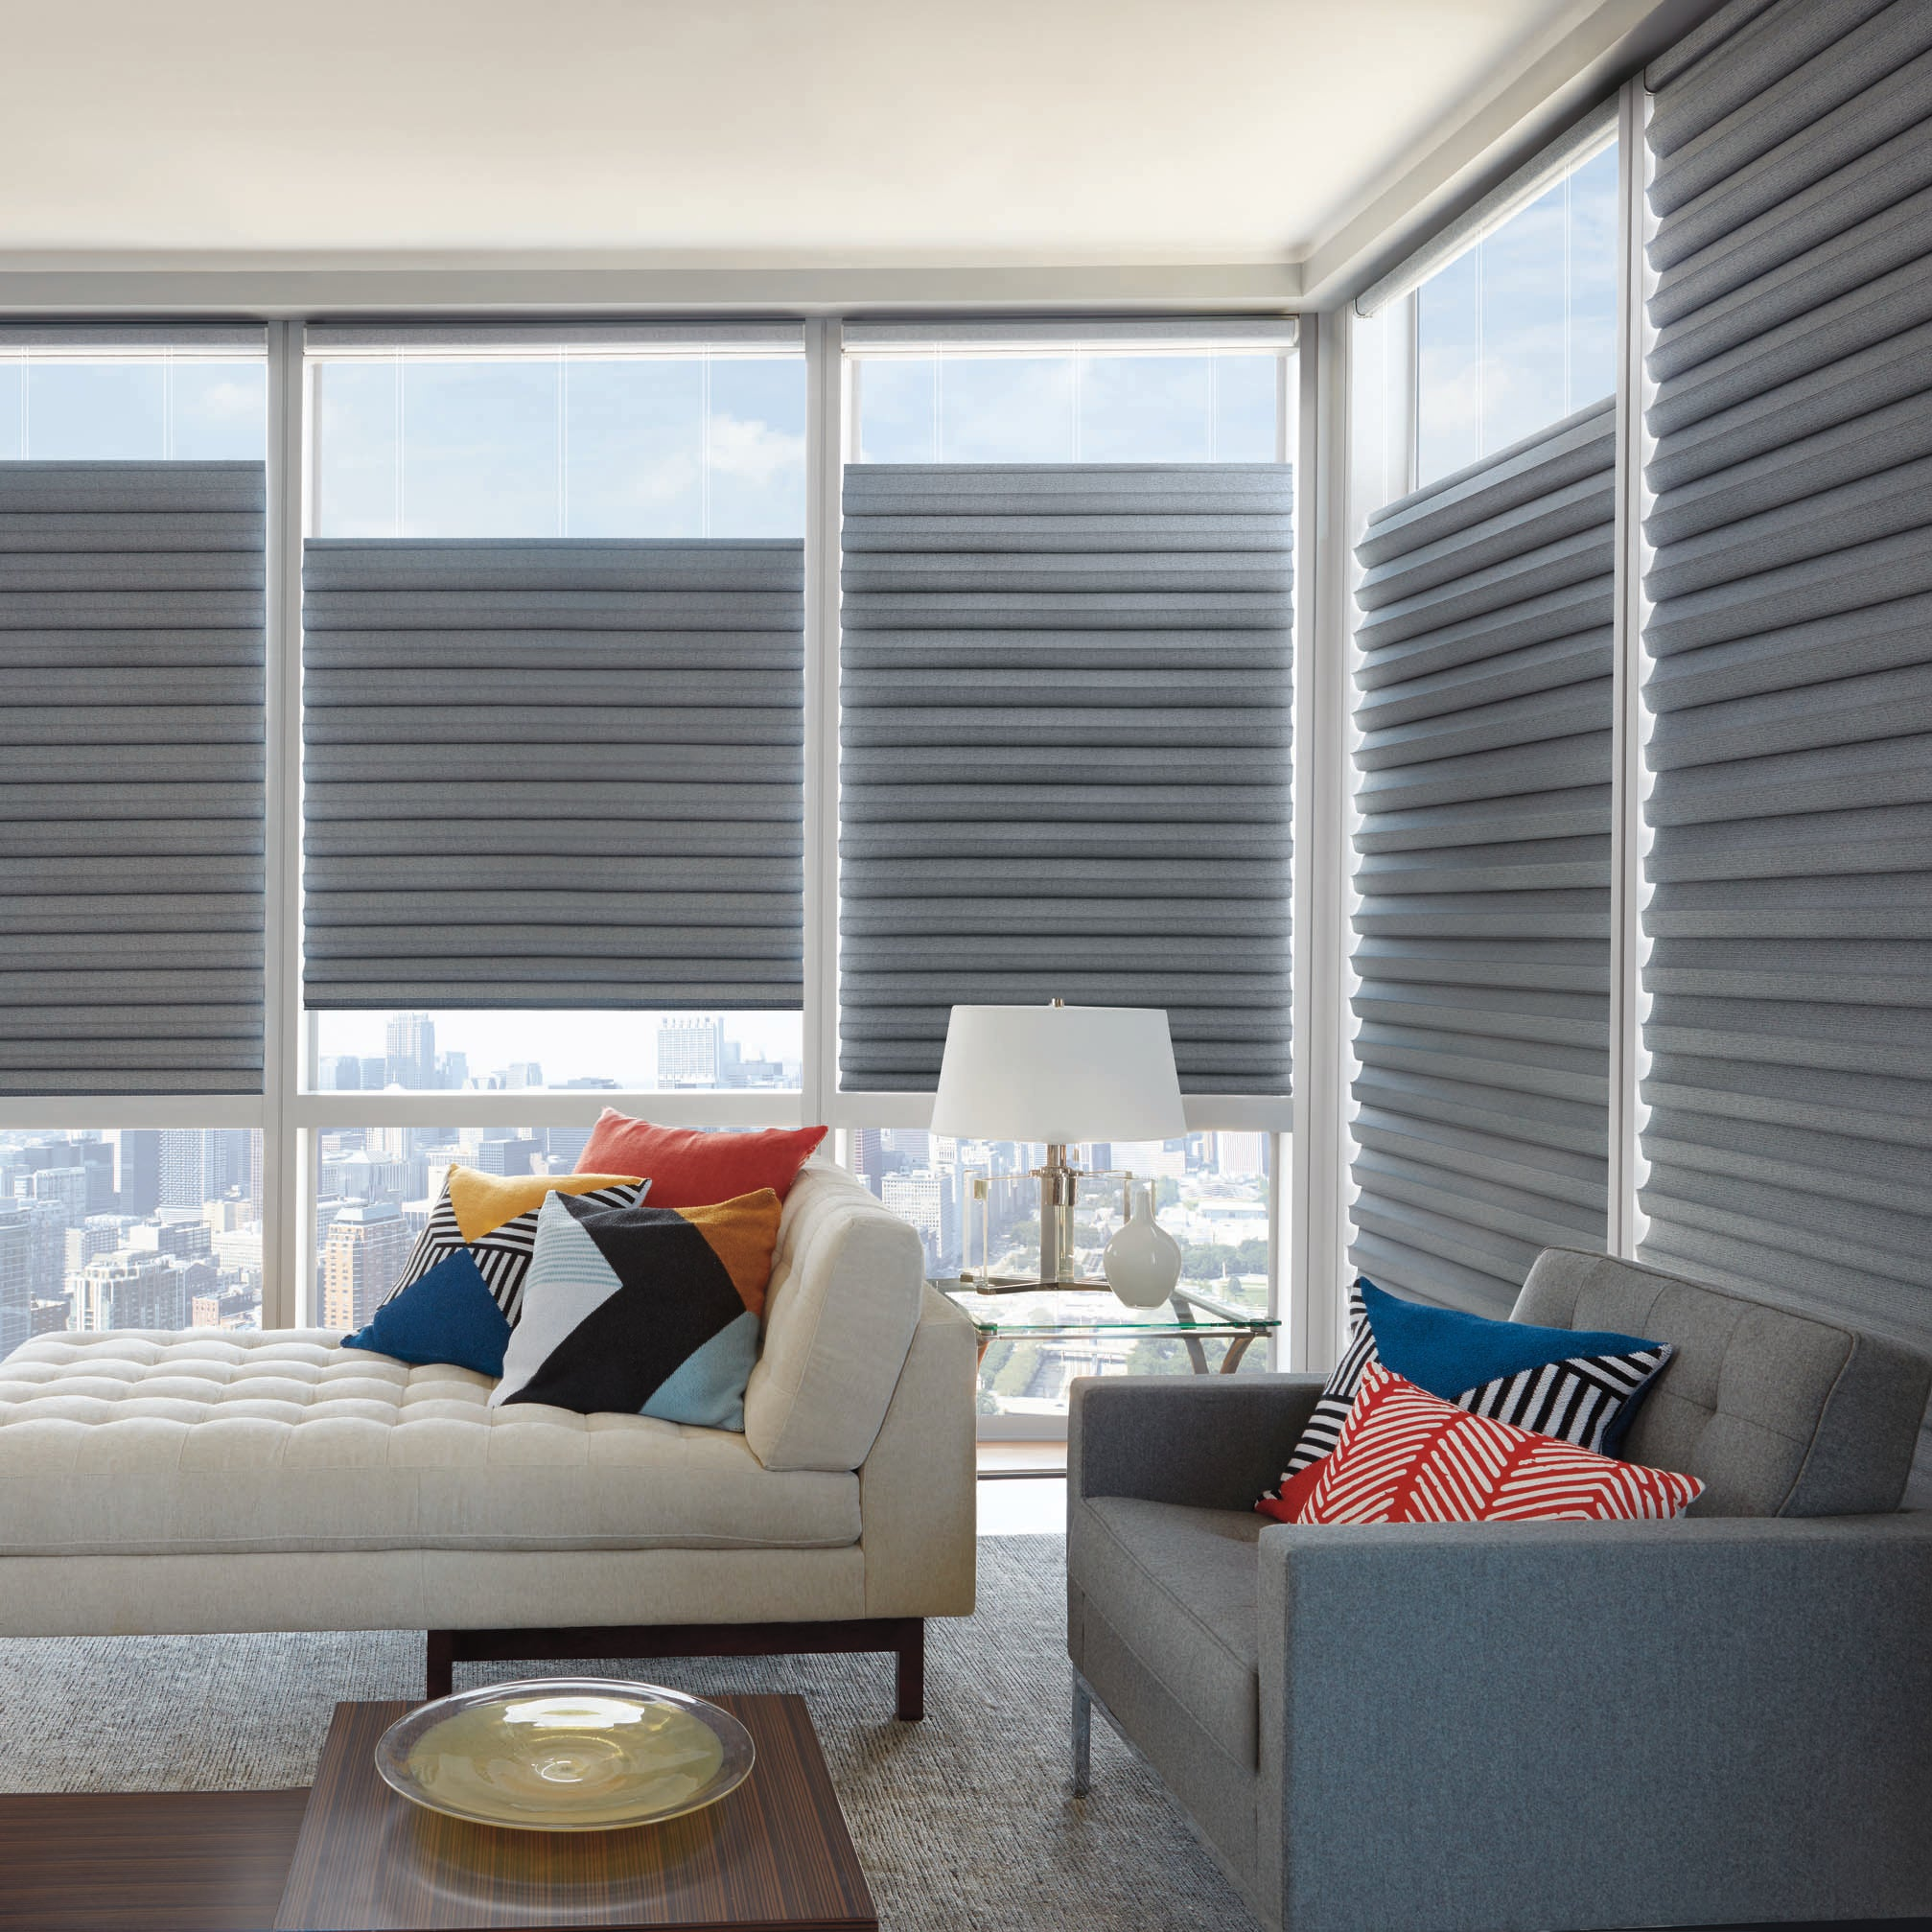 Barrydowne Paint offers Hunter Douglas with TopDownBottomUp systems, Sudbury, ON.